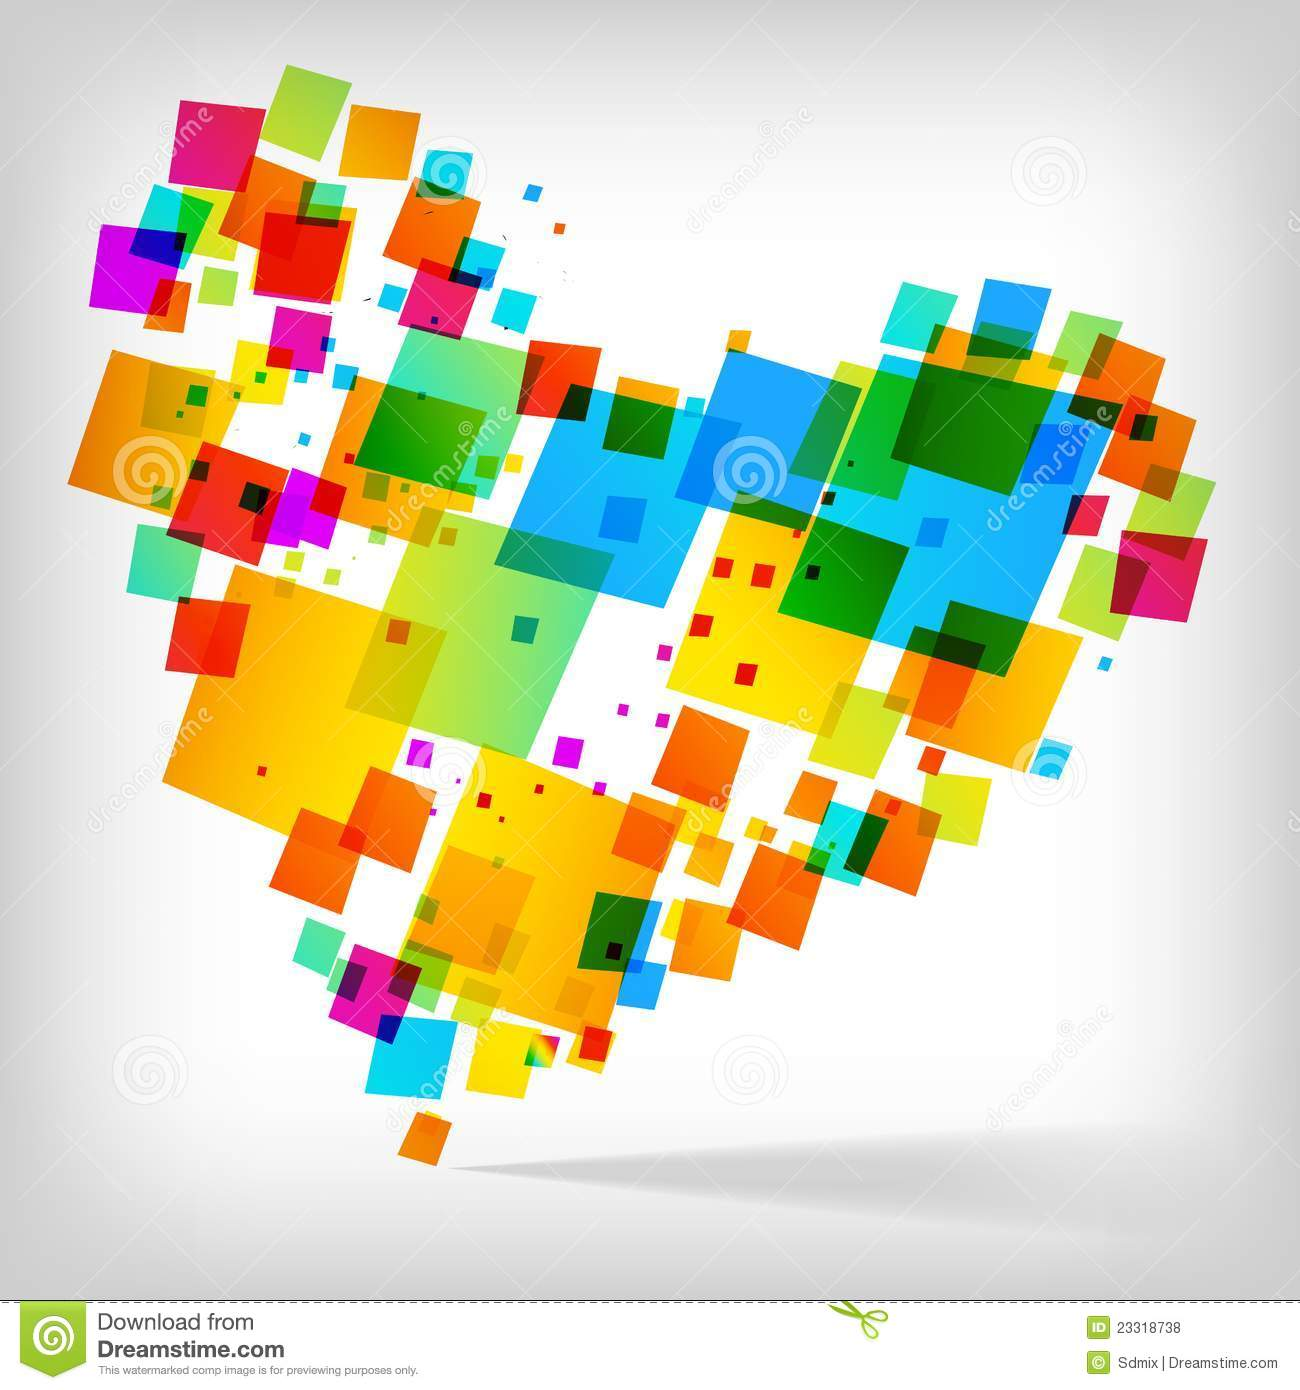 The abstract heart colorful background